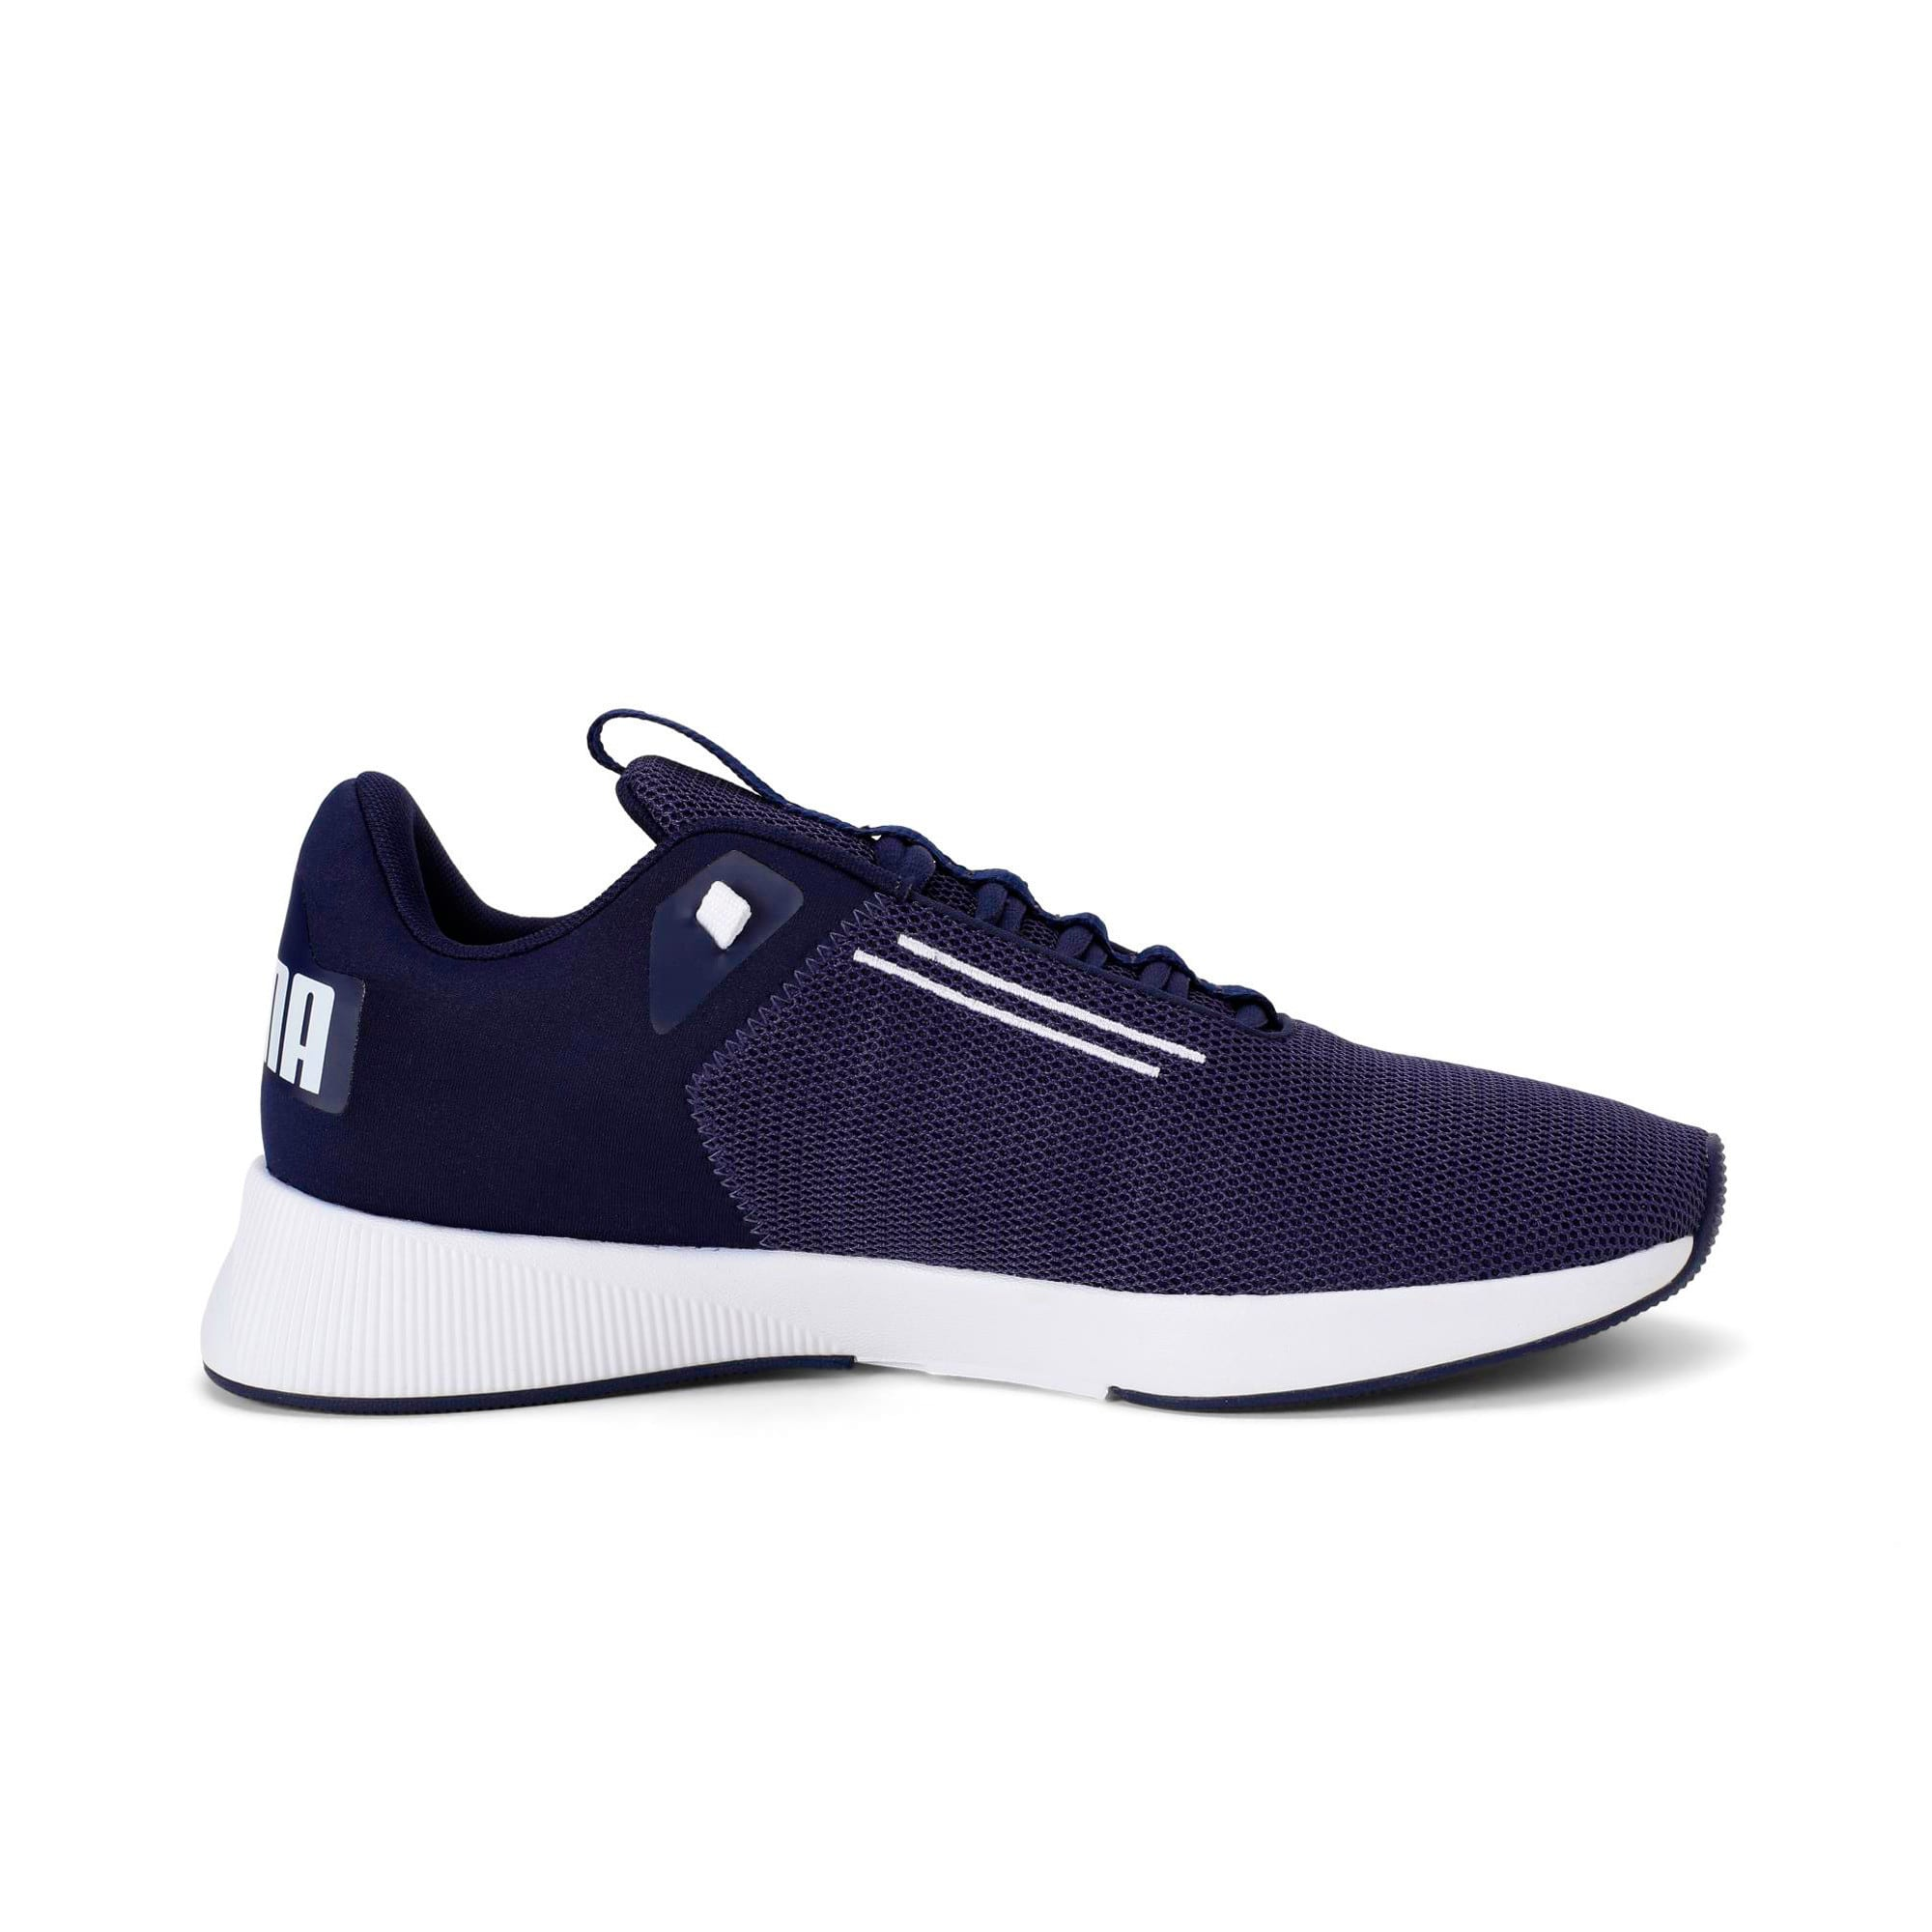 Thumbnail 5 of Flyer Modern Running Shoes, Peacoat-Puma White, medium-IND